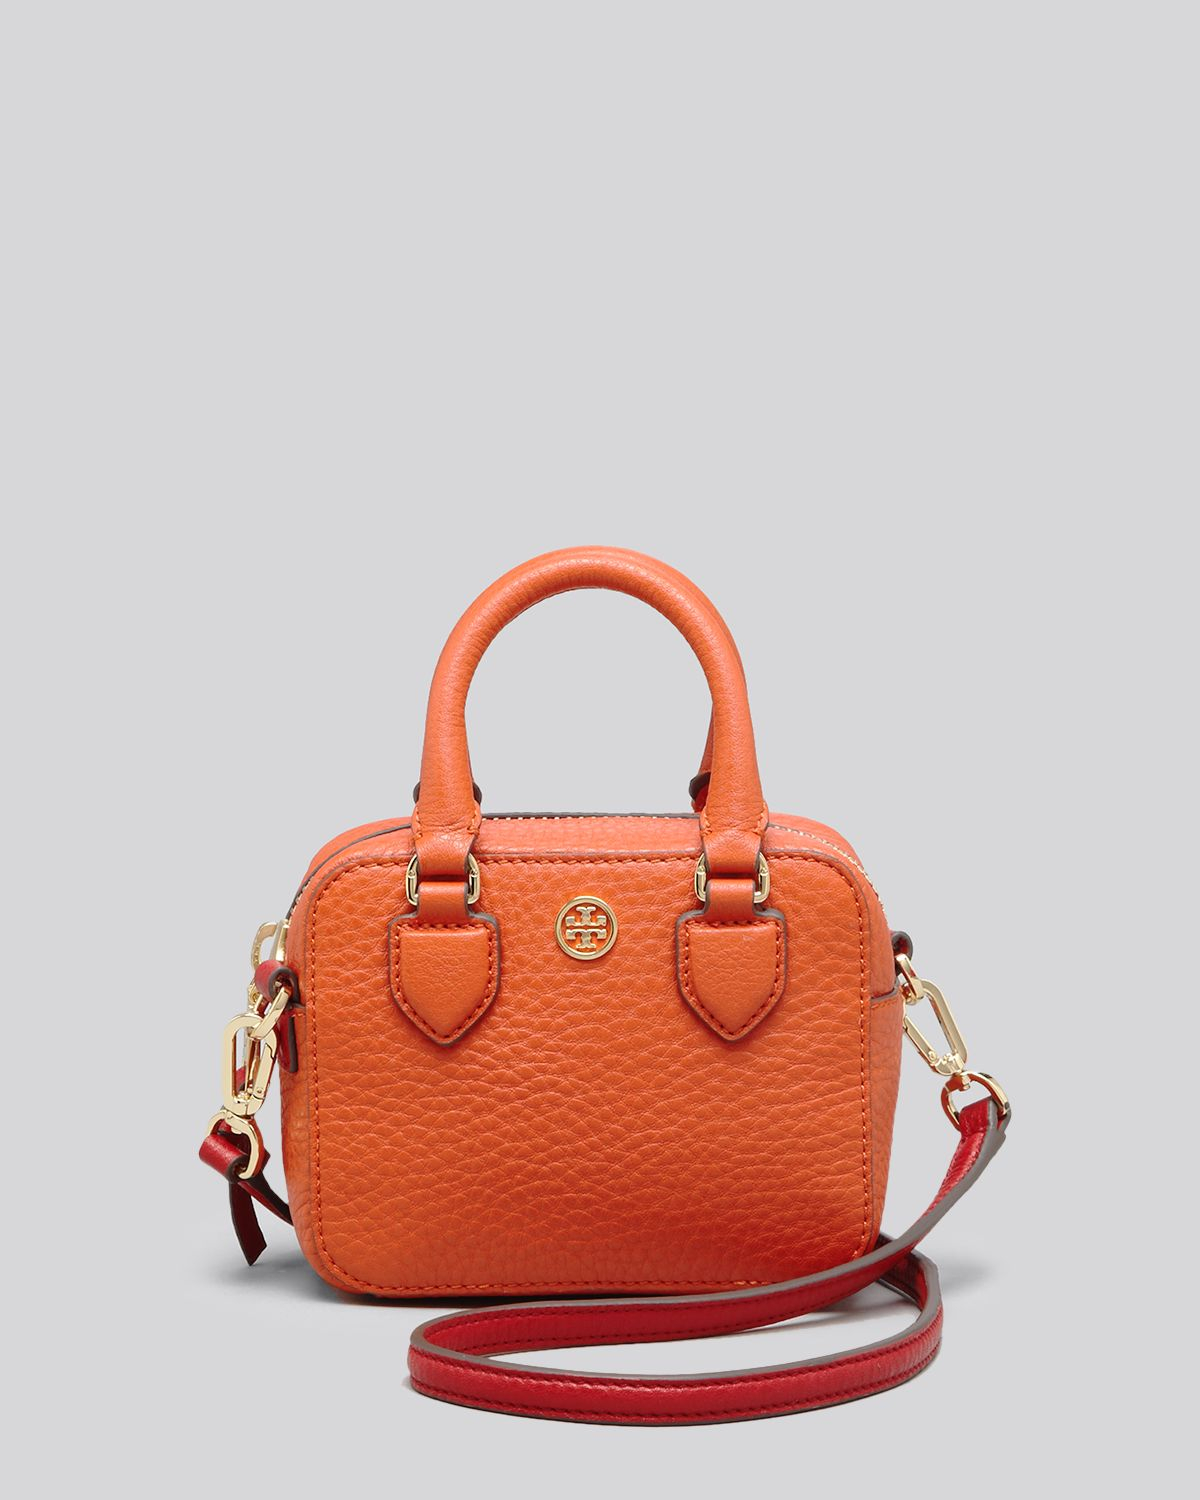 f8b2f5863ee36 Lyst - Tory Burch Crossbody - Robinson Pebbled Shrunken Mini Satchel ...